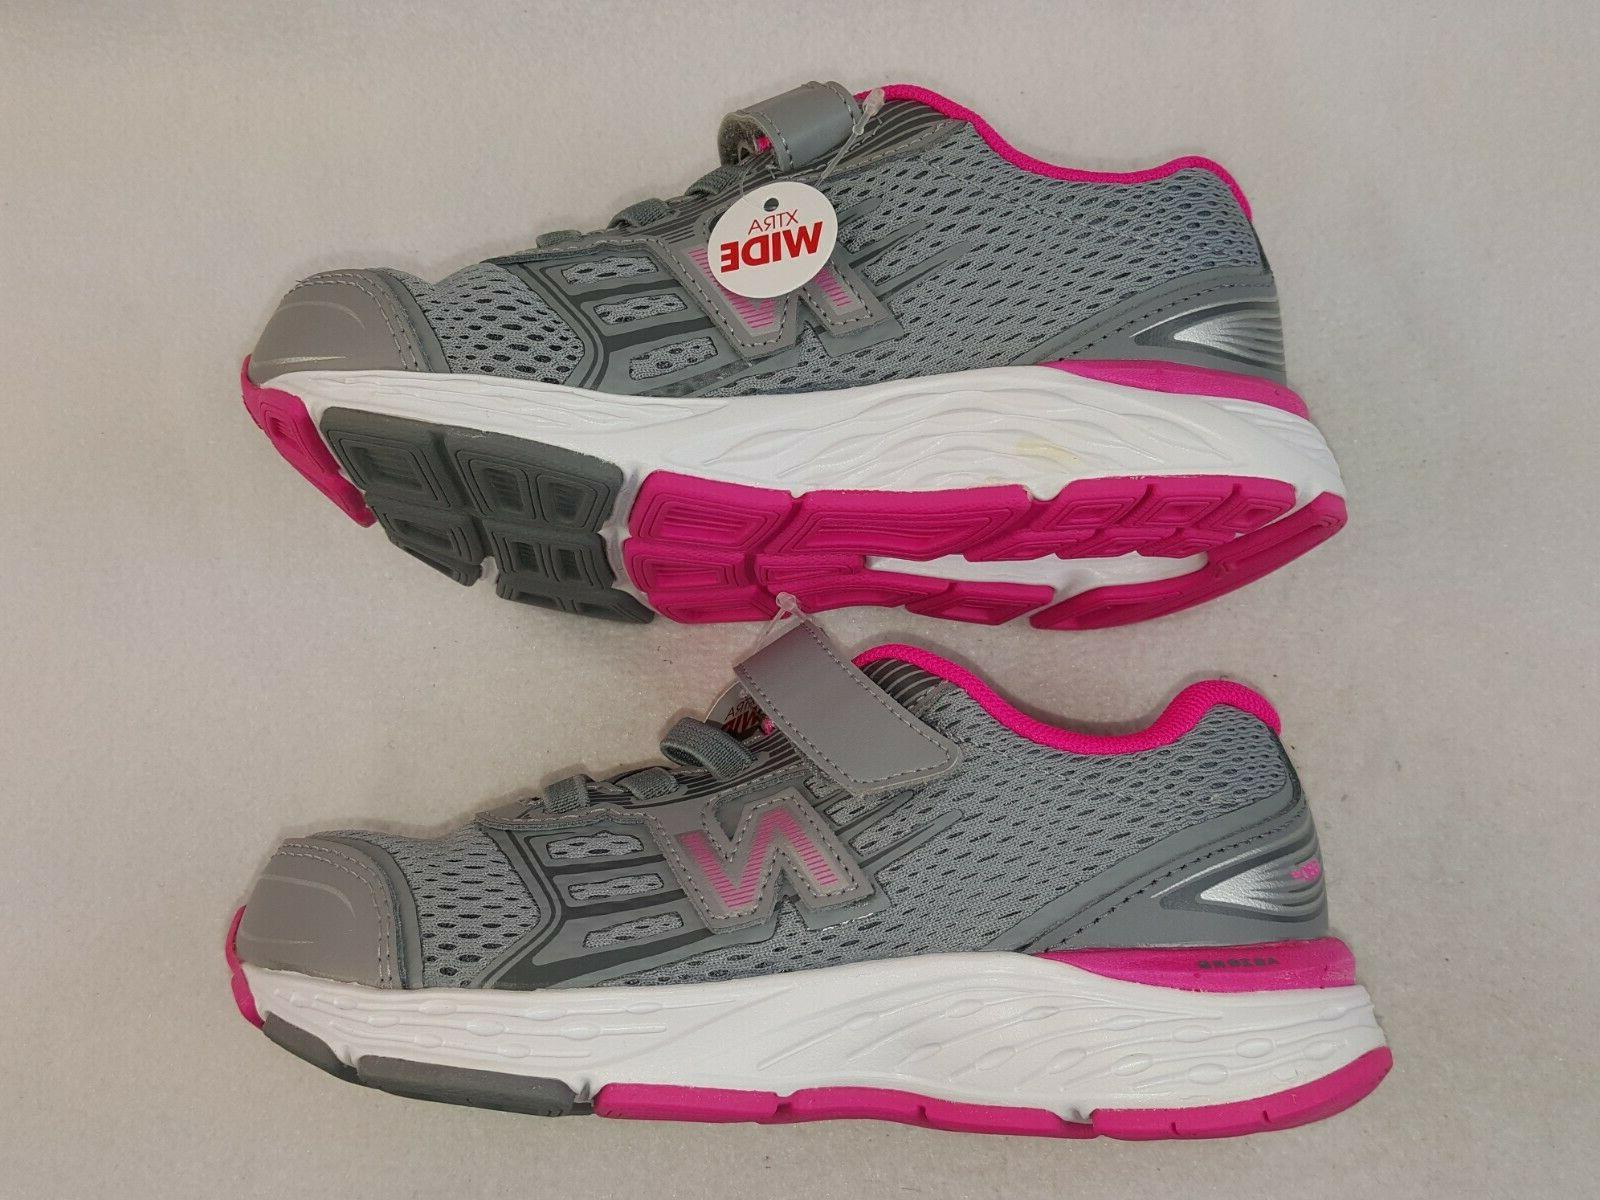 New Balance Little Kids Sneakers,Gray/Pink 12.5 Extra